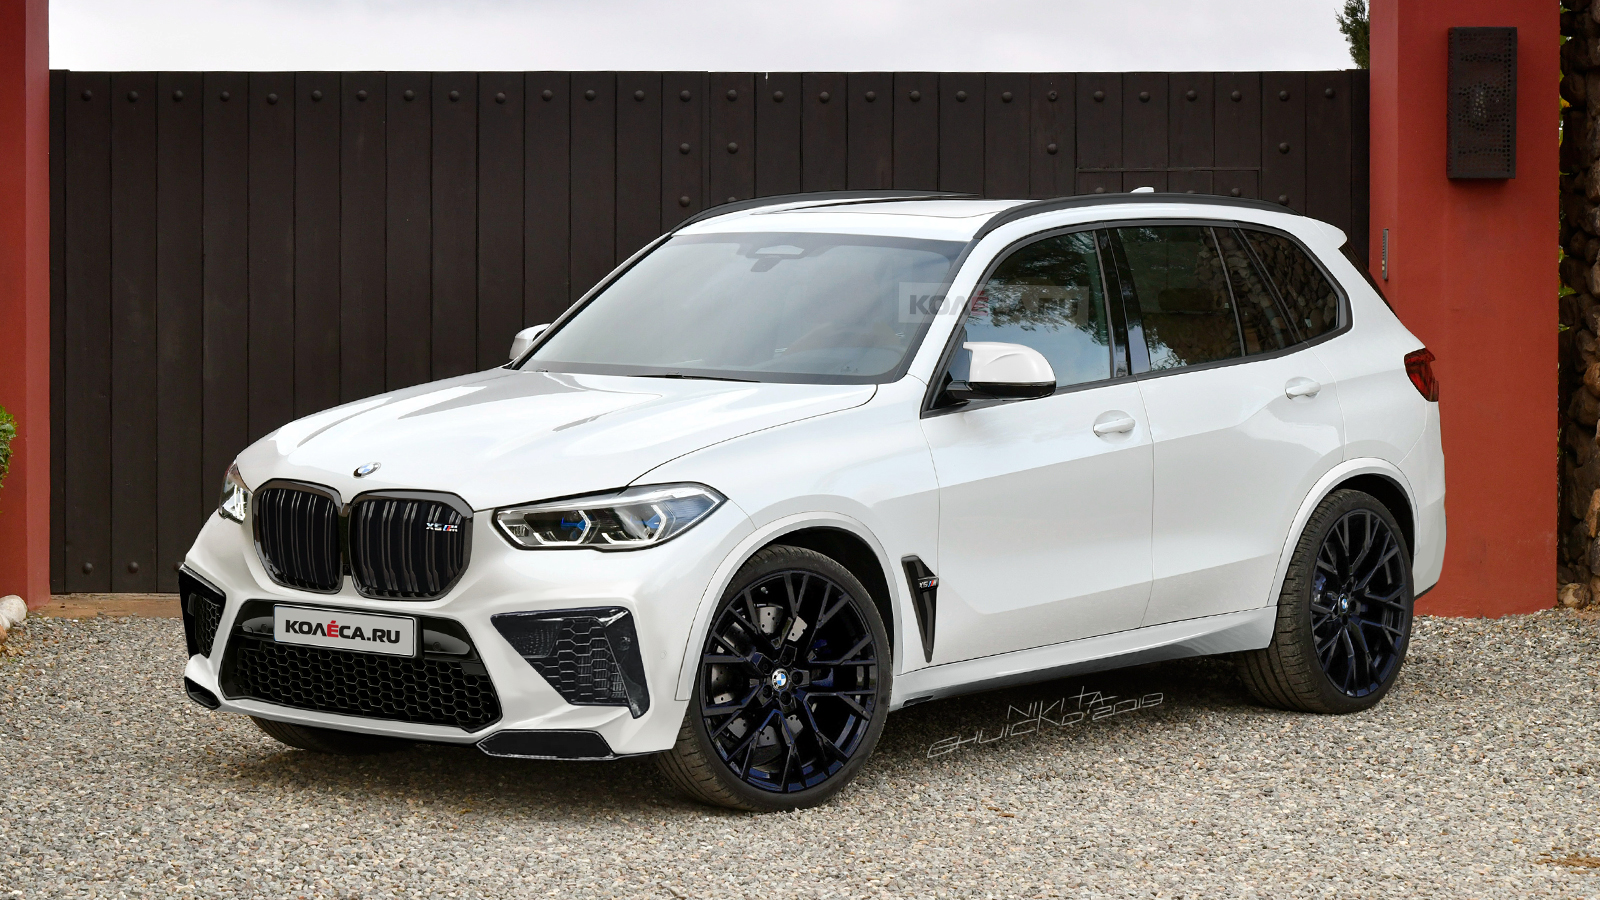 BMW F95 X5 M gets teased through new renderings